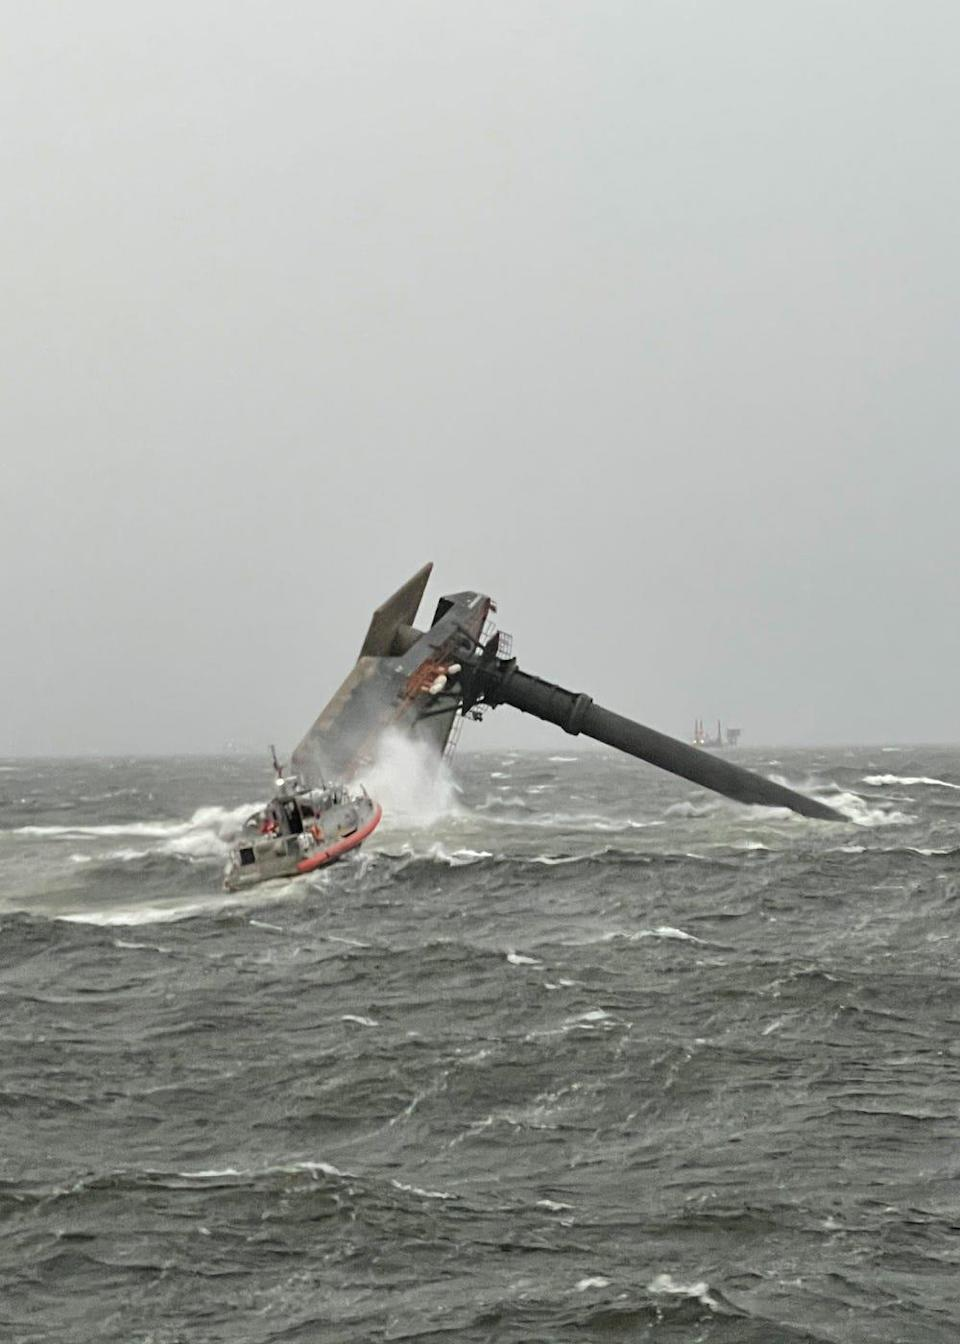 The Coast Guard and multiple good Samaritan vessels rescued six people from a capsized commercial vessel Tuesday off the coast of Louisiana.